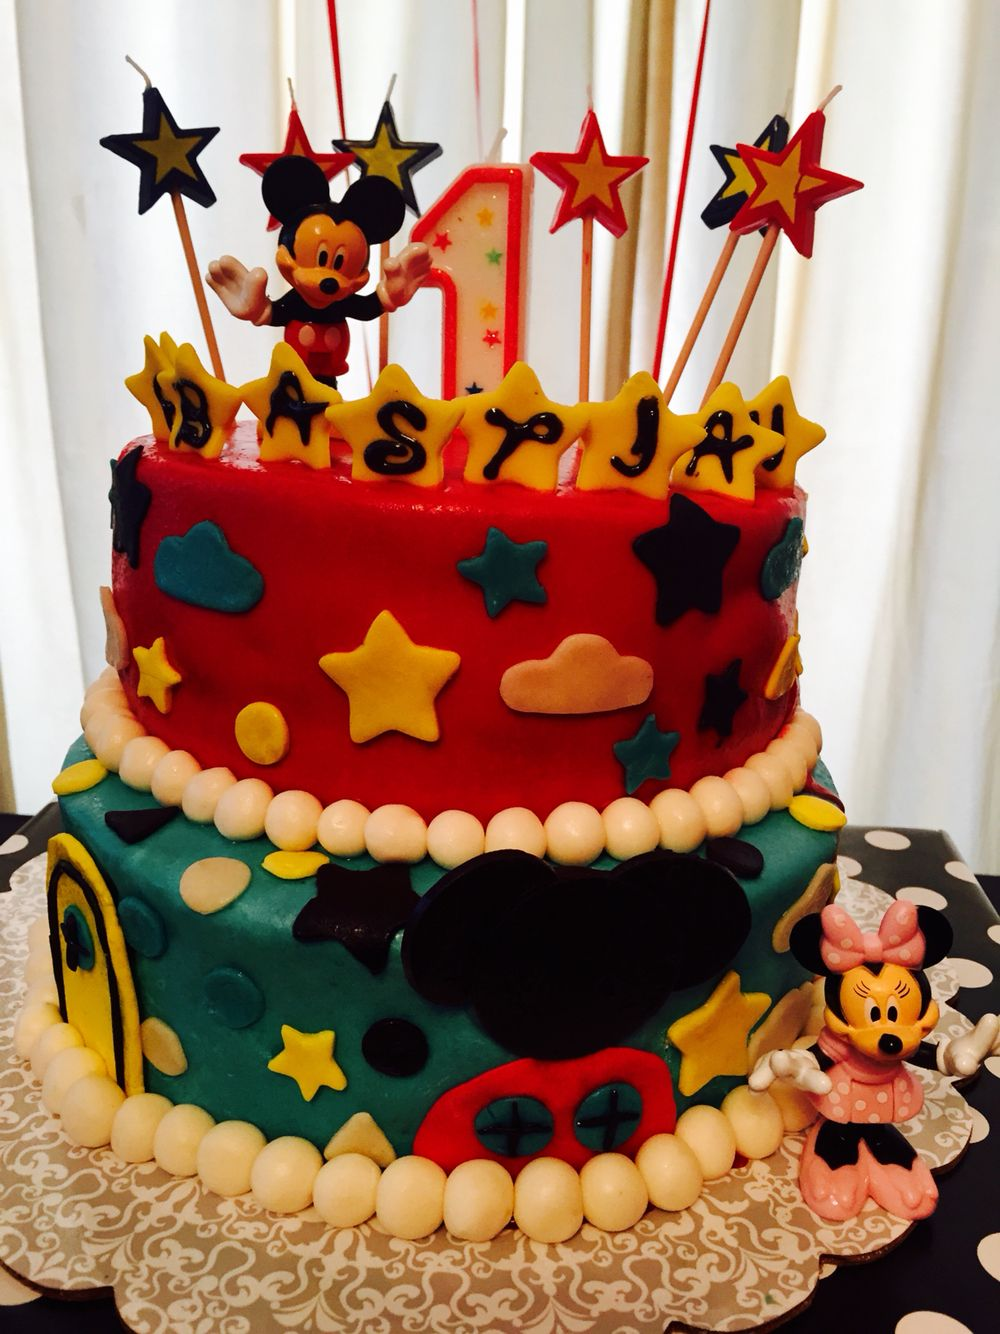 Sebastians Mickey Birthday Cake Made By Zeba Ramos Cakes How To Make